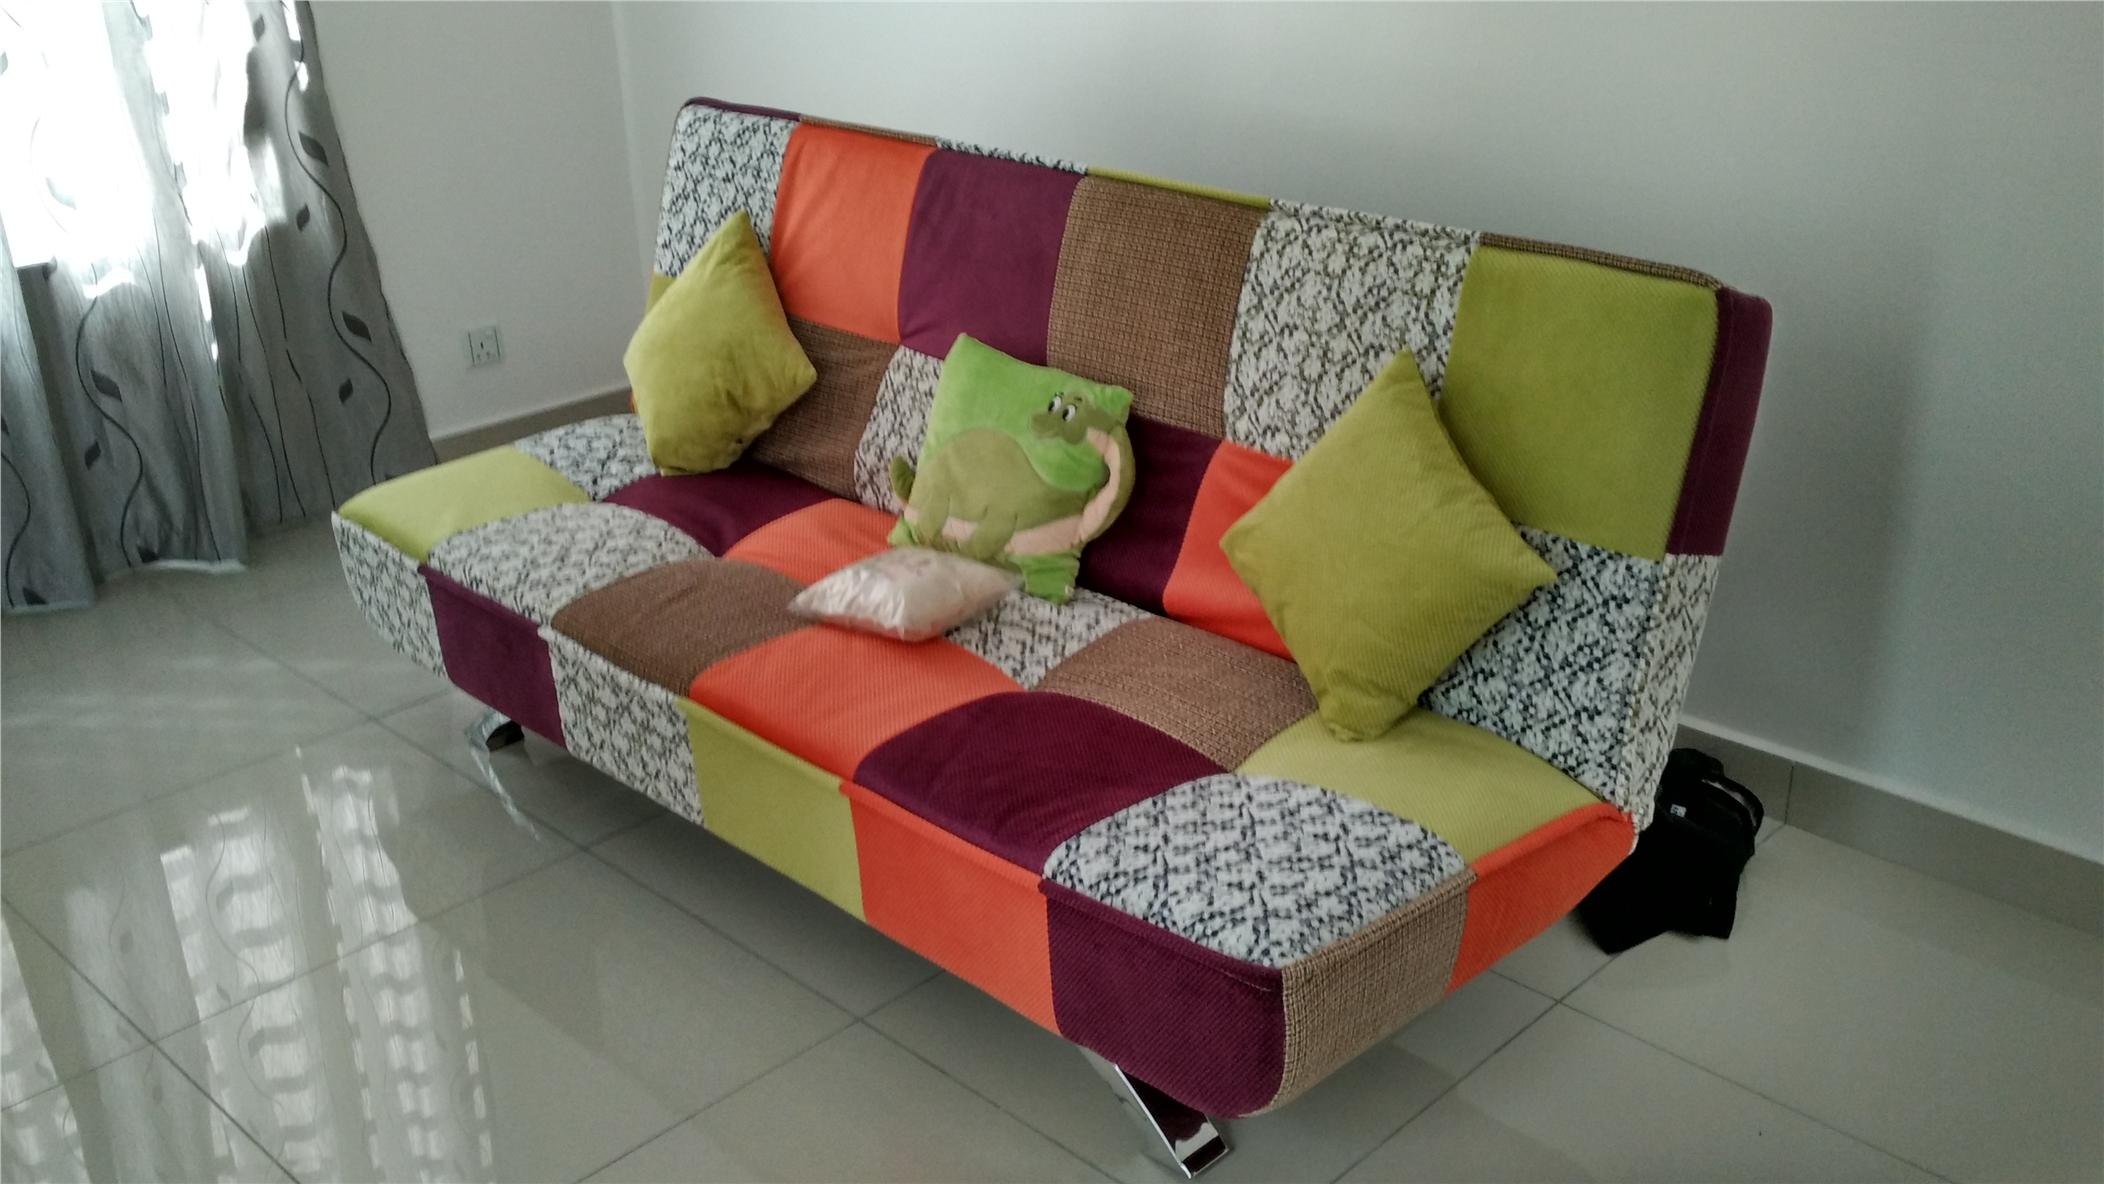 Patchwork sofa penang end time 7 18 2017 6 15 pm for Sofa patchwork